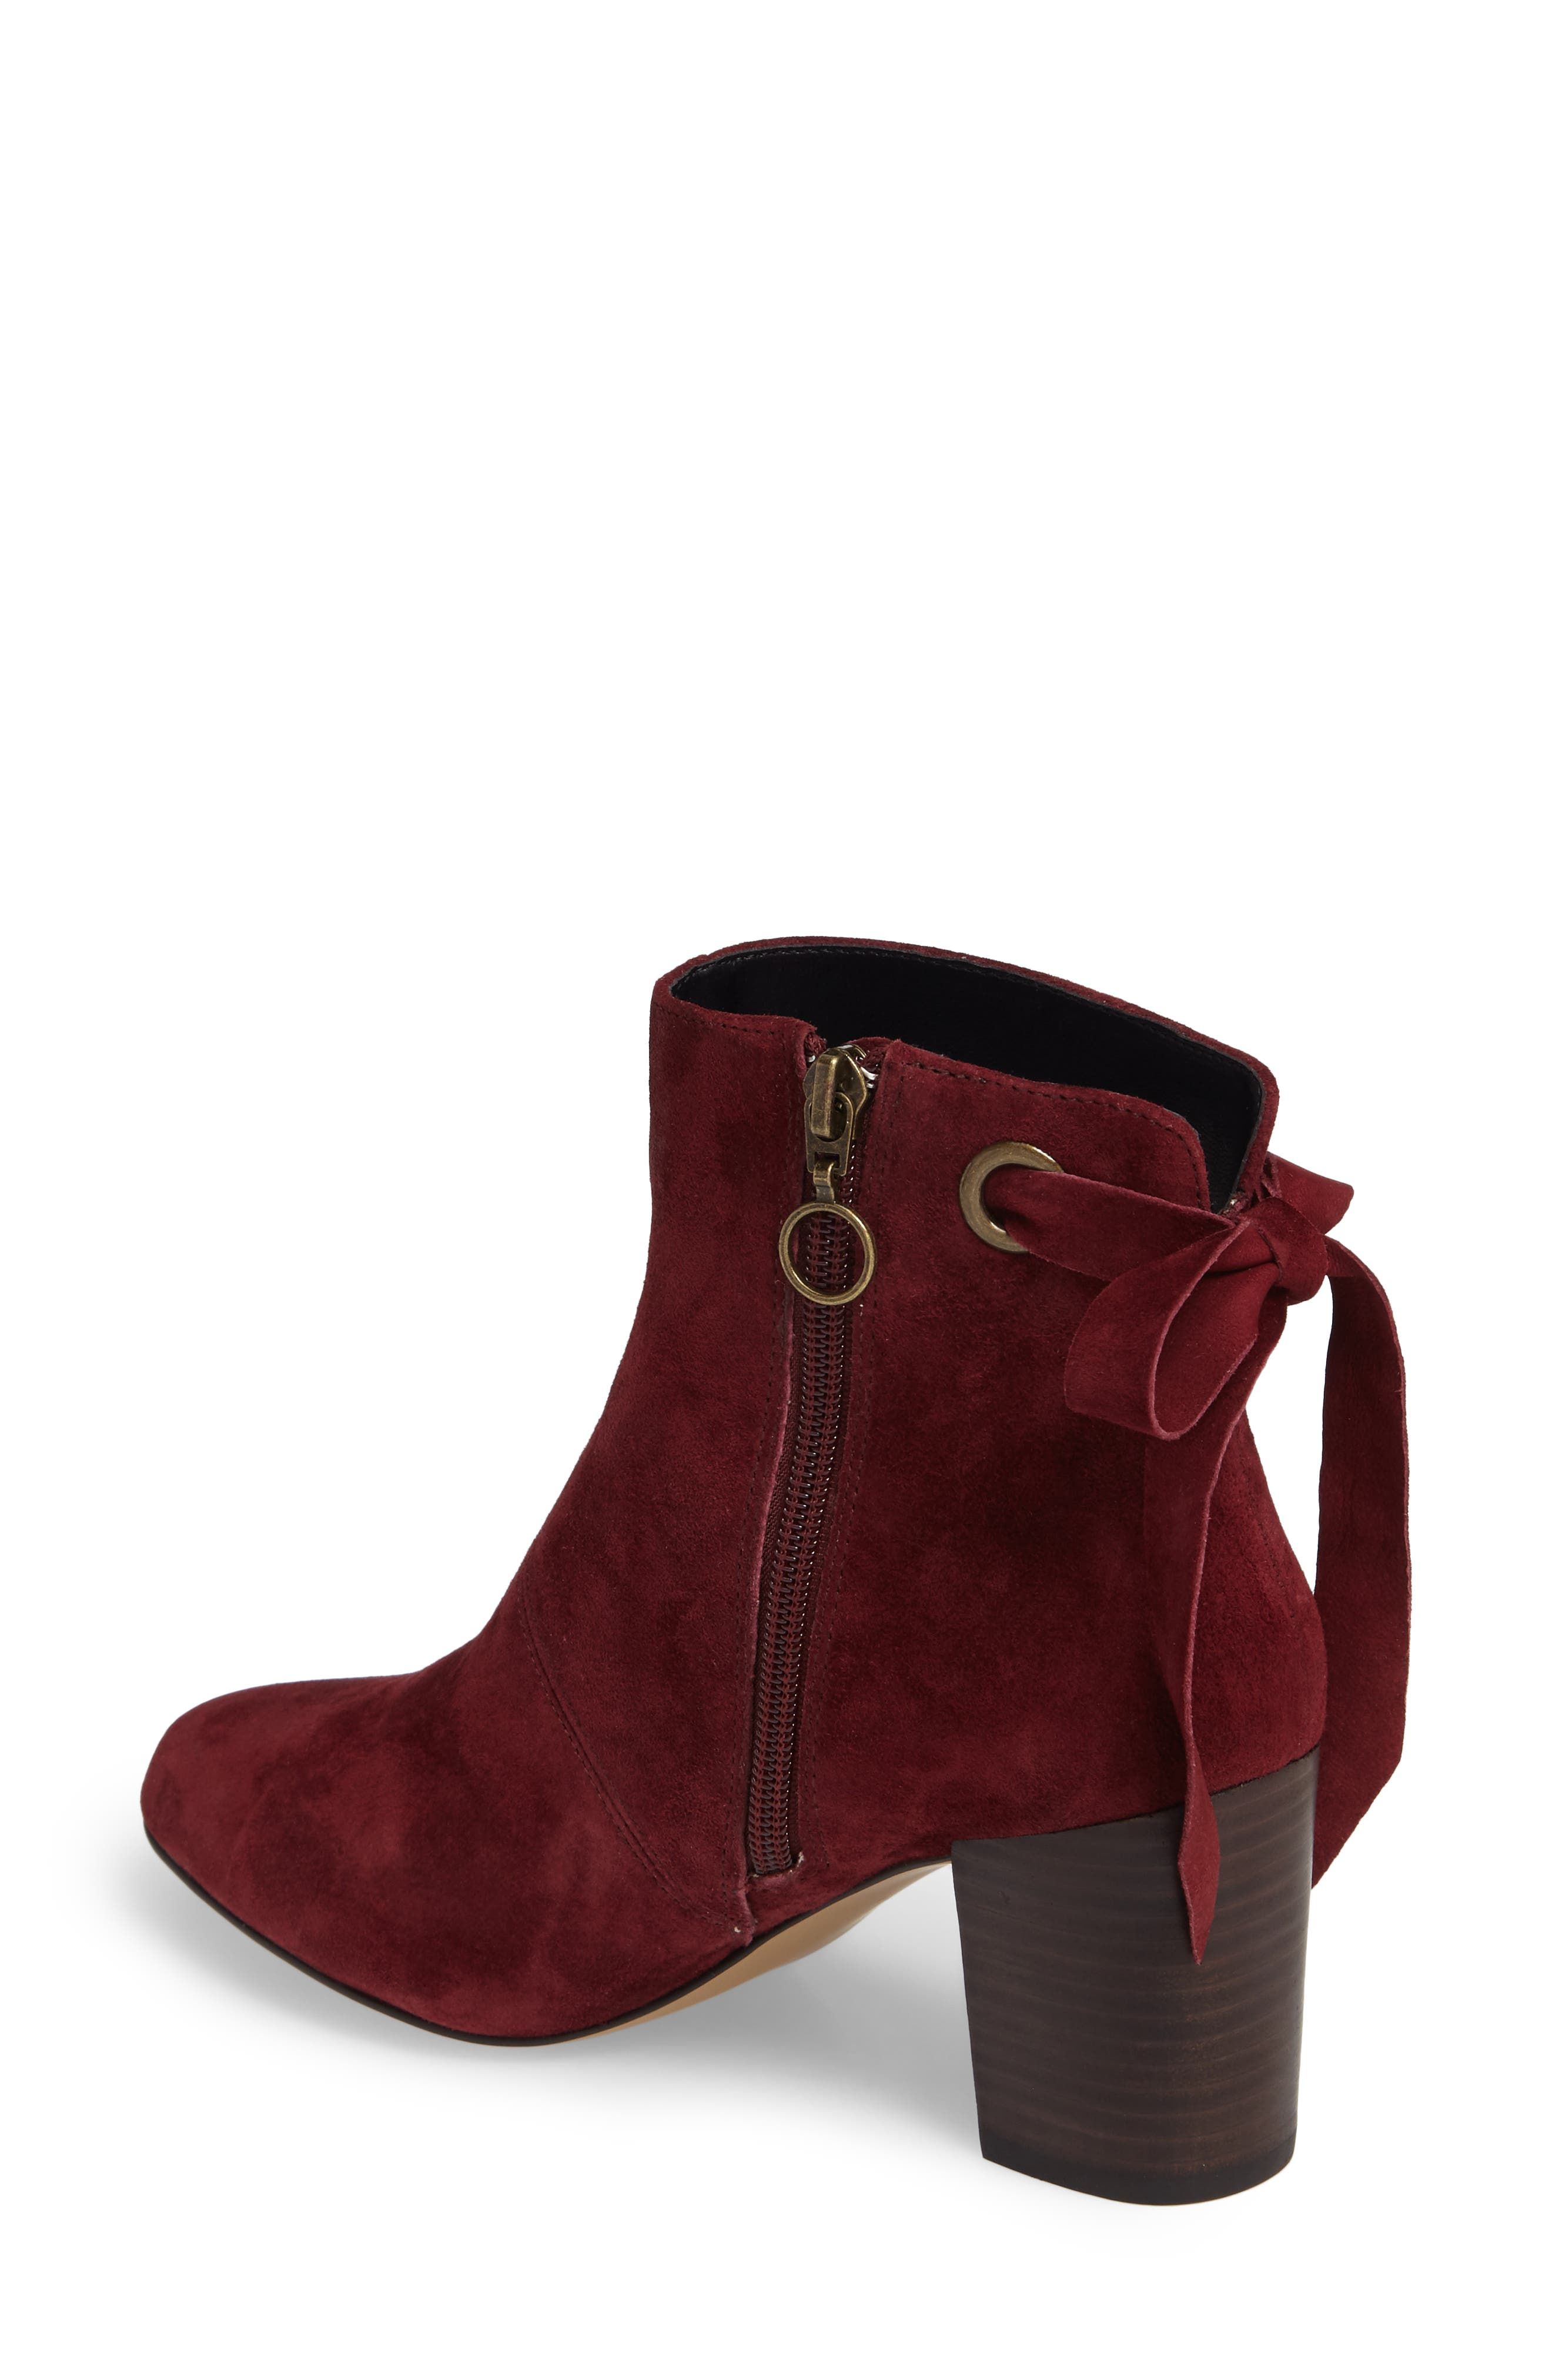 Roxbury Bootie,                             Alternate thumbnail 2, color,                             Rumba Red Suede